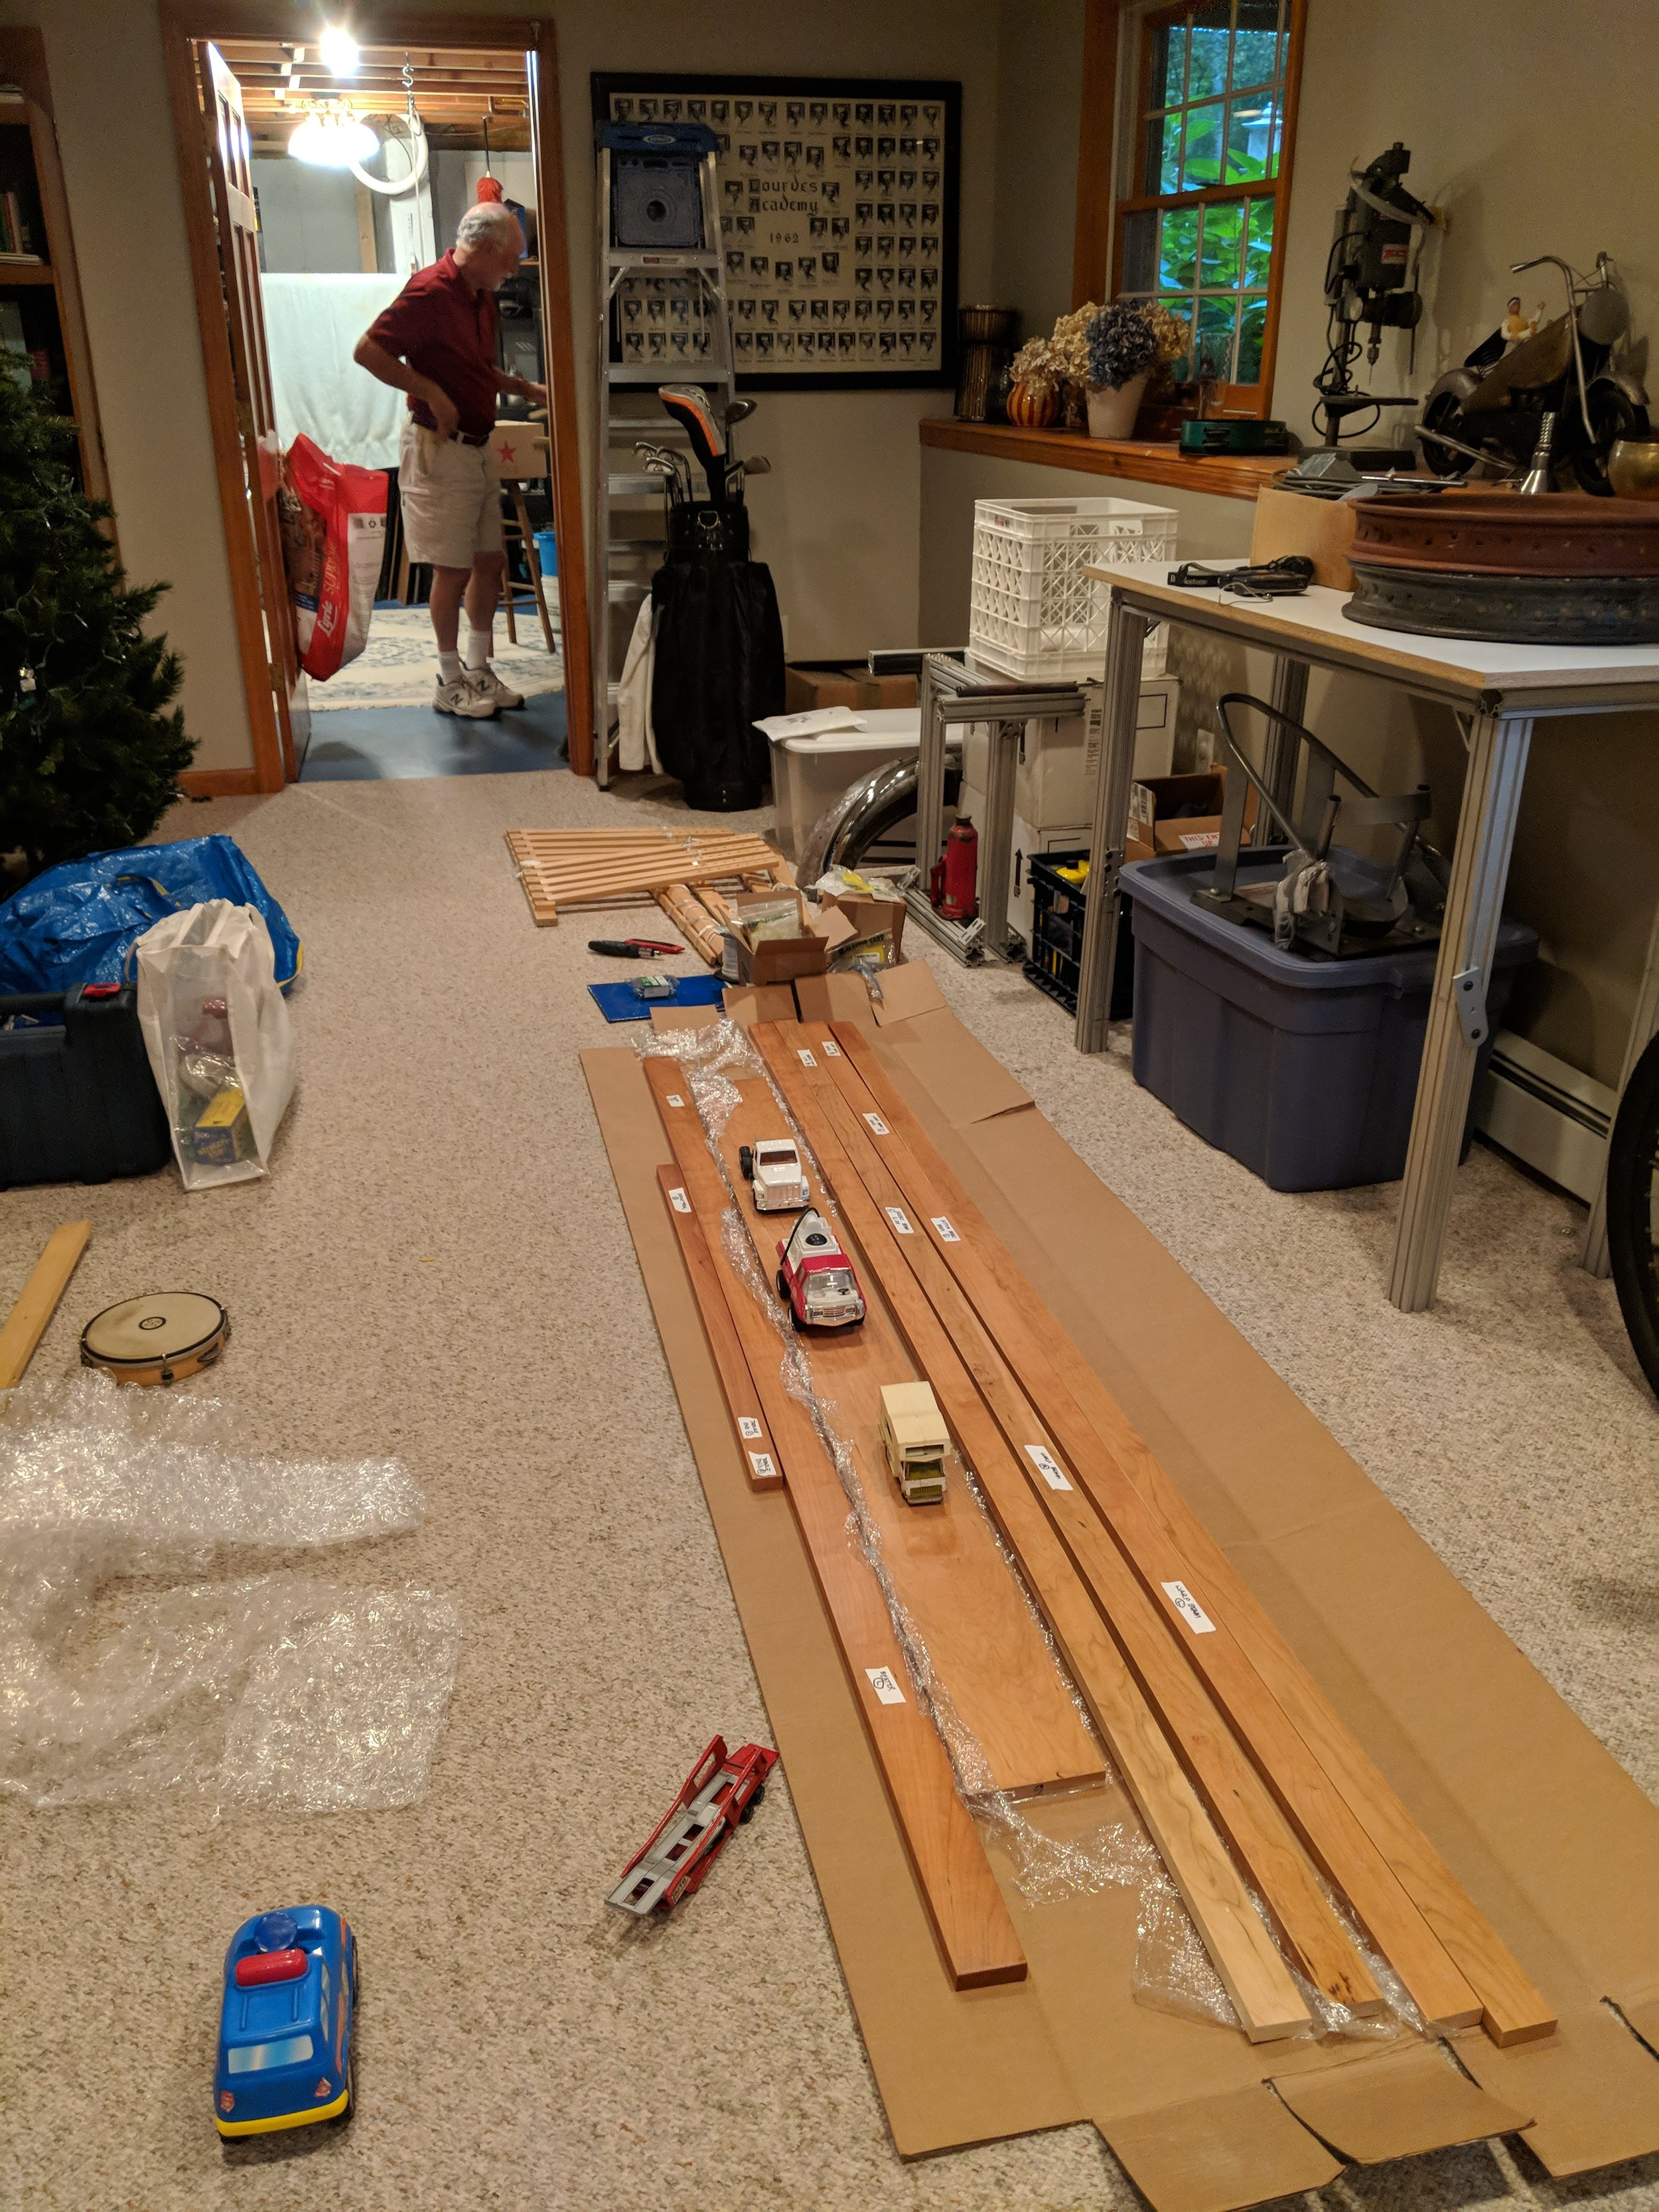 Wood is ready to be cut. That's my pops in the background helping.